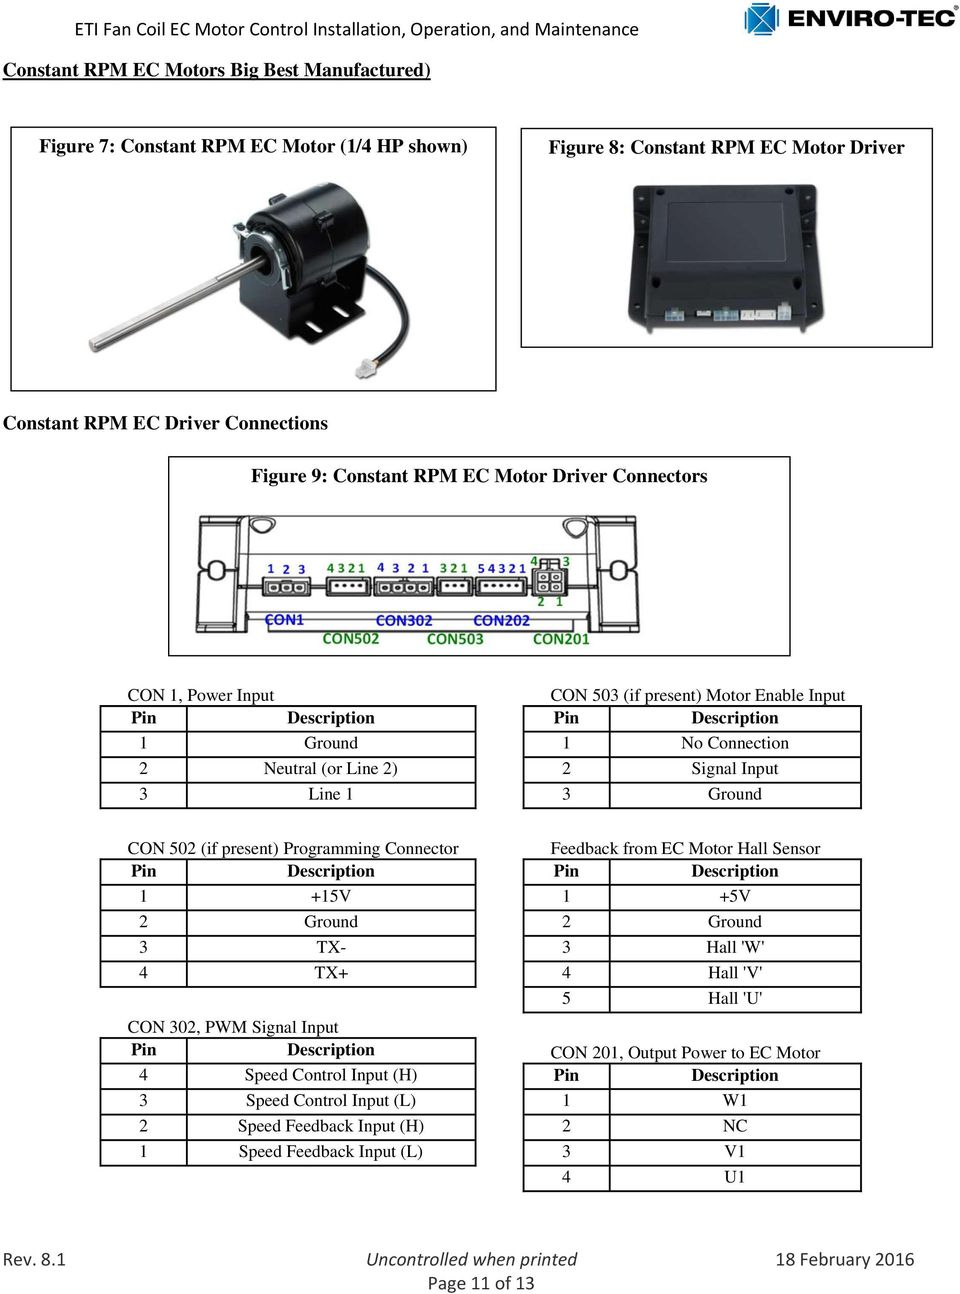 Fan Coil Ec Motor Control Pdf Constant Speed Pwm Circuit Schematic If Present Ming Connector Feedback From Hall Sensor Pin Description